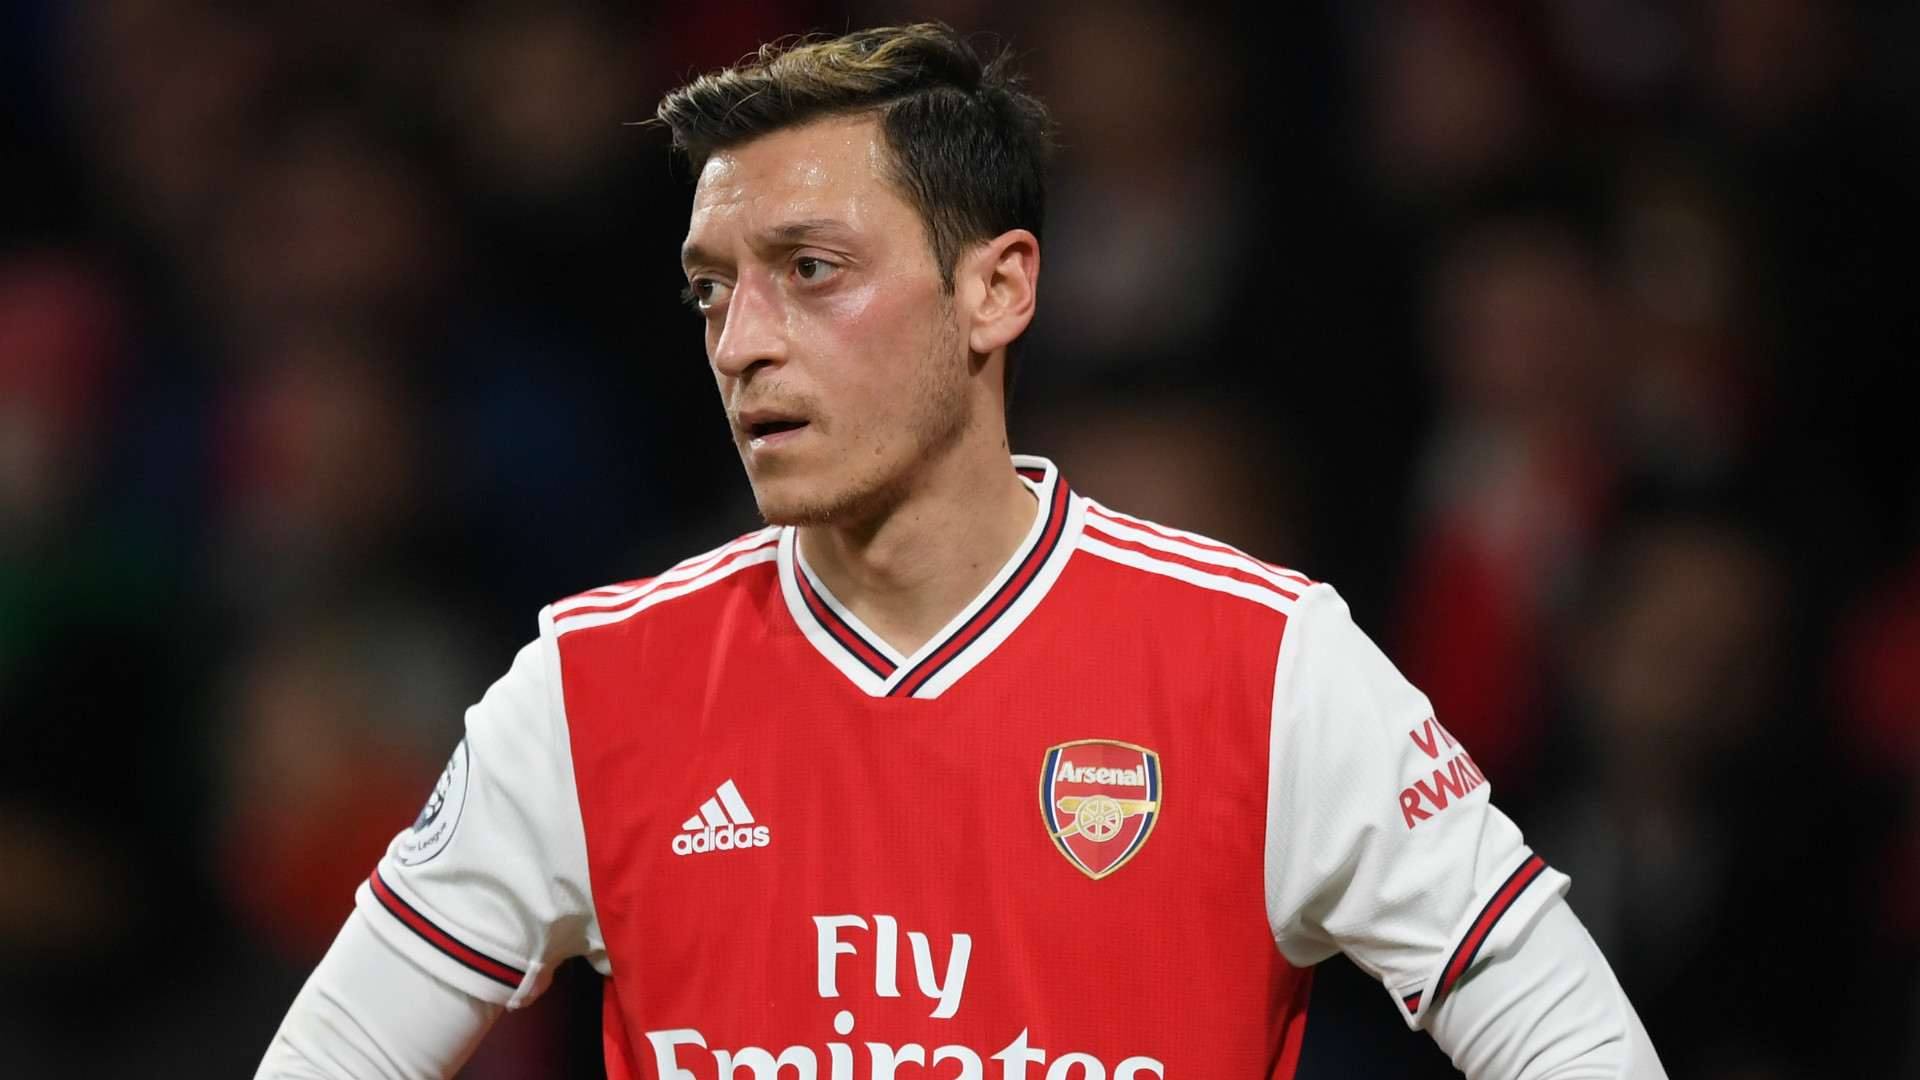 Mesut Ozil hits back at Arteta as German says he's ready to play